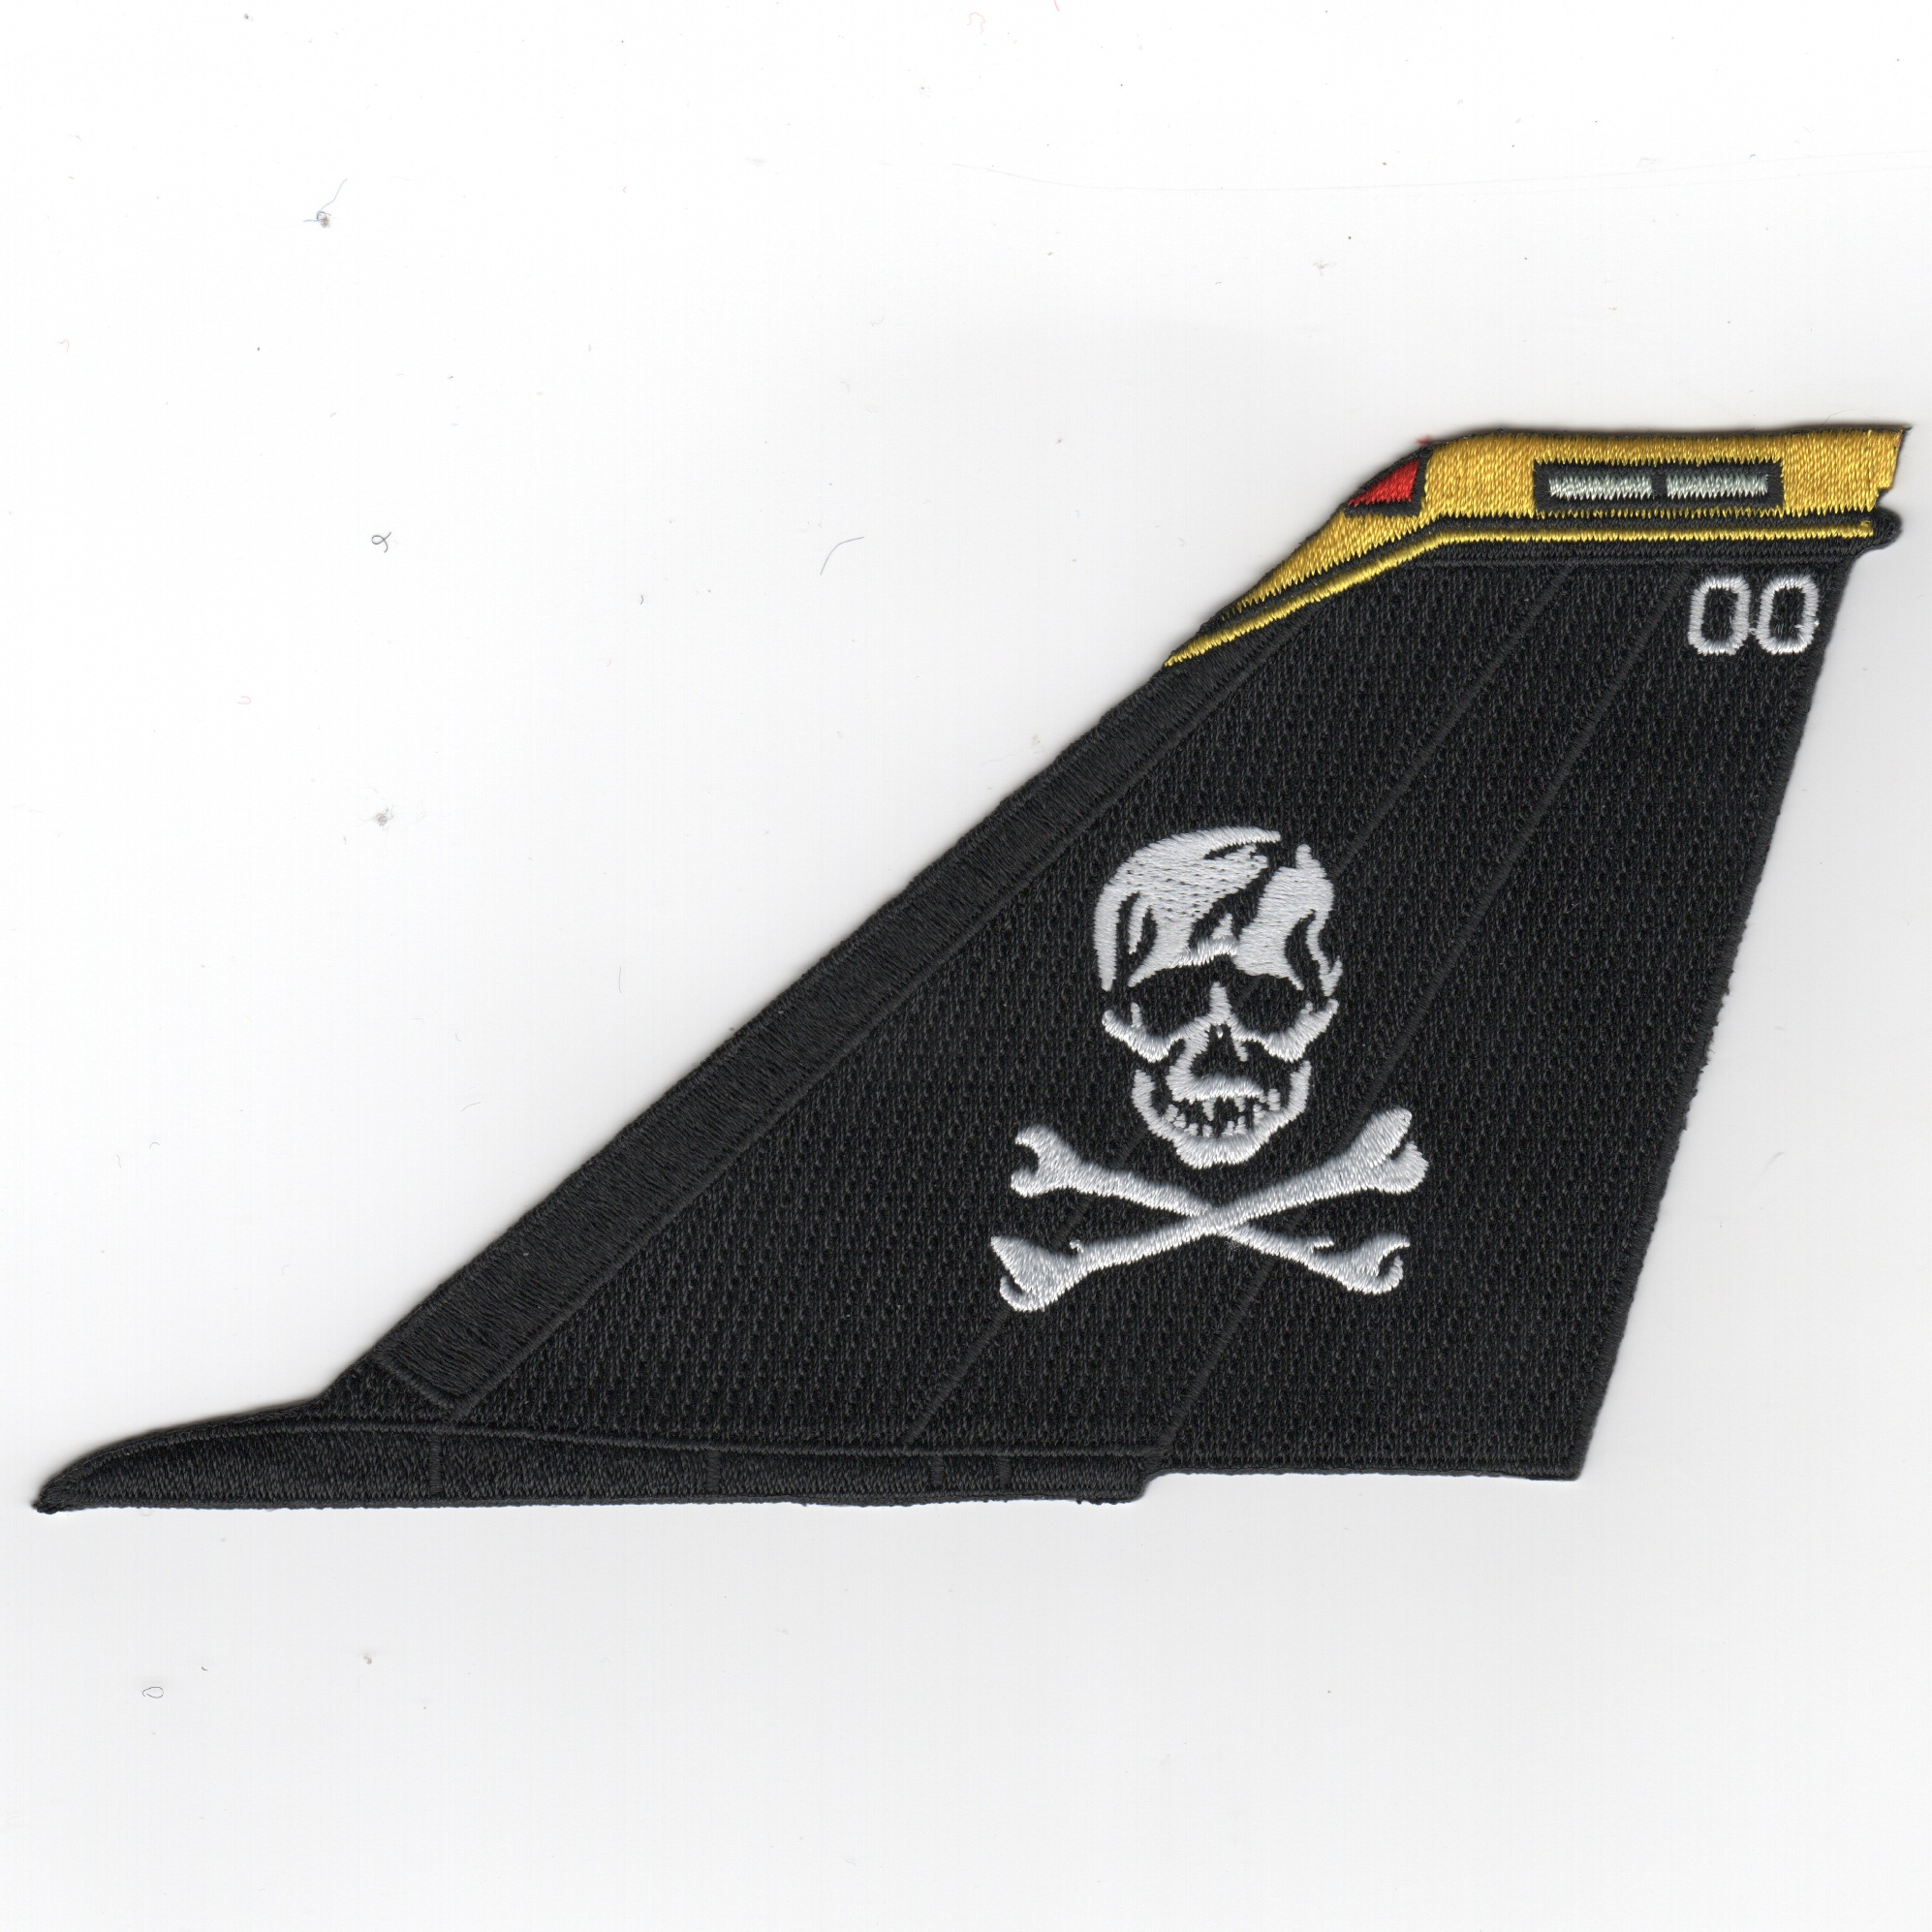 VF-103 F-14 Tailfin (Black/White Skull/Yellow Tip/No Text)